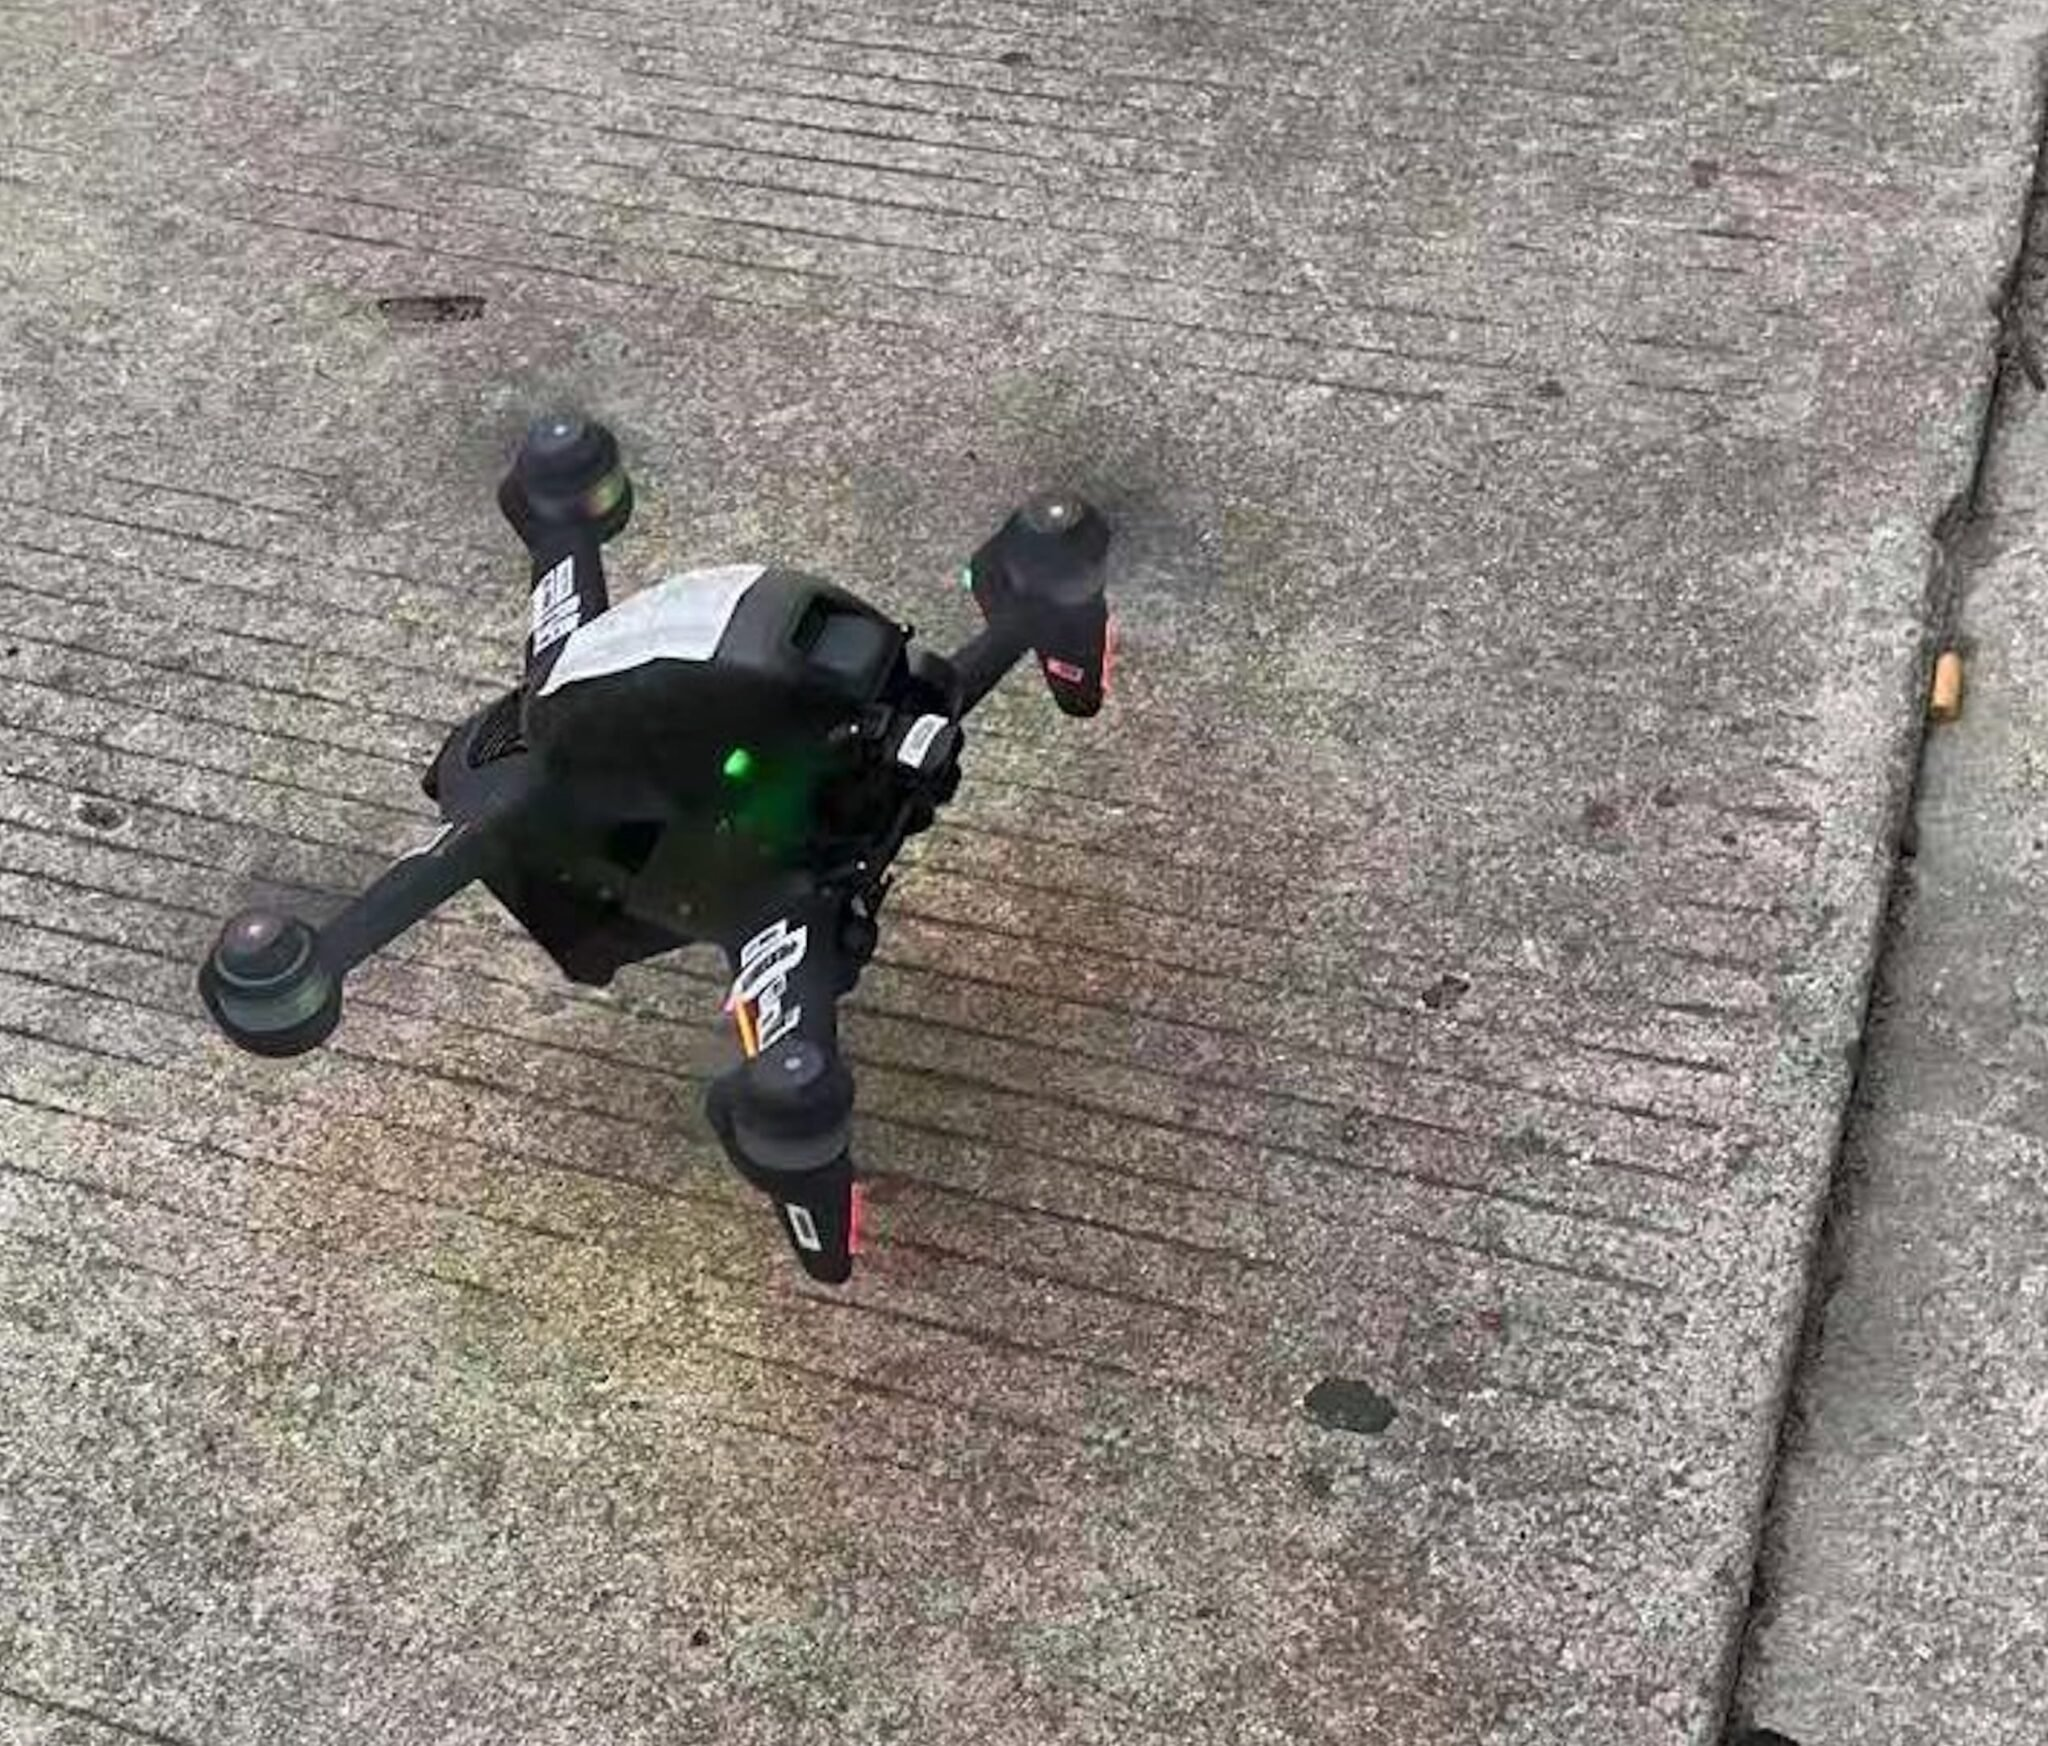 How do you think the DJI FPV quad will fly?